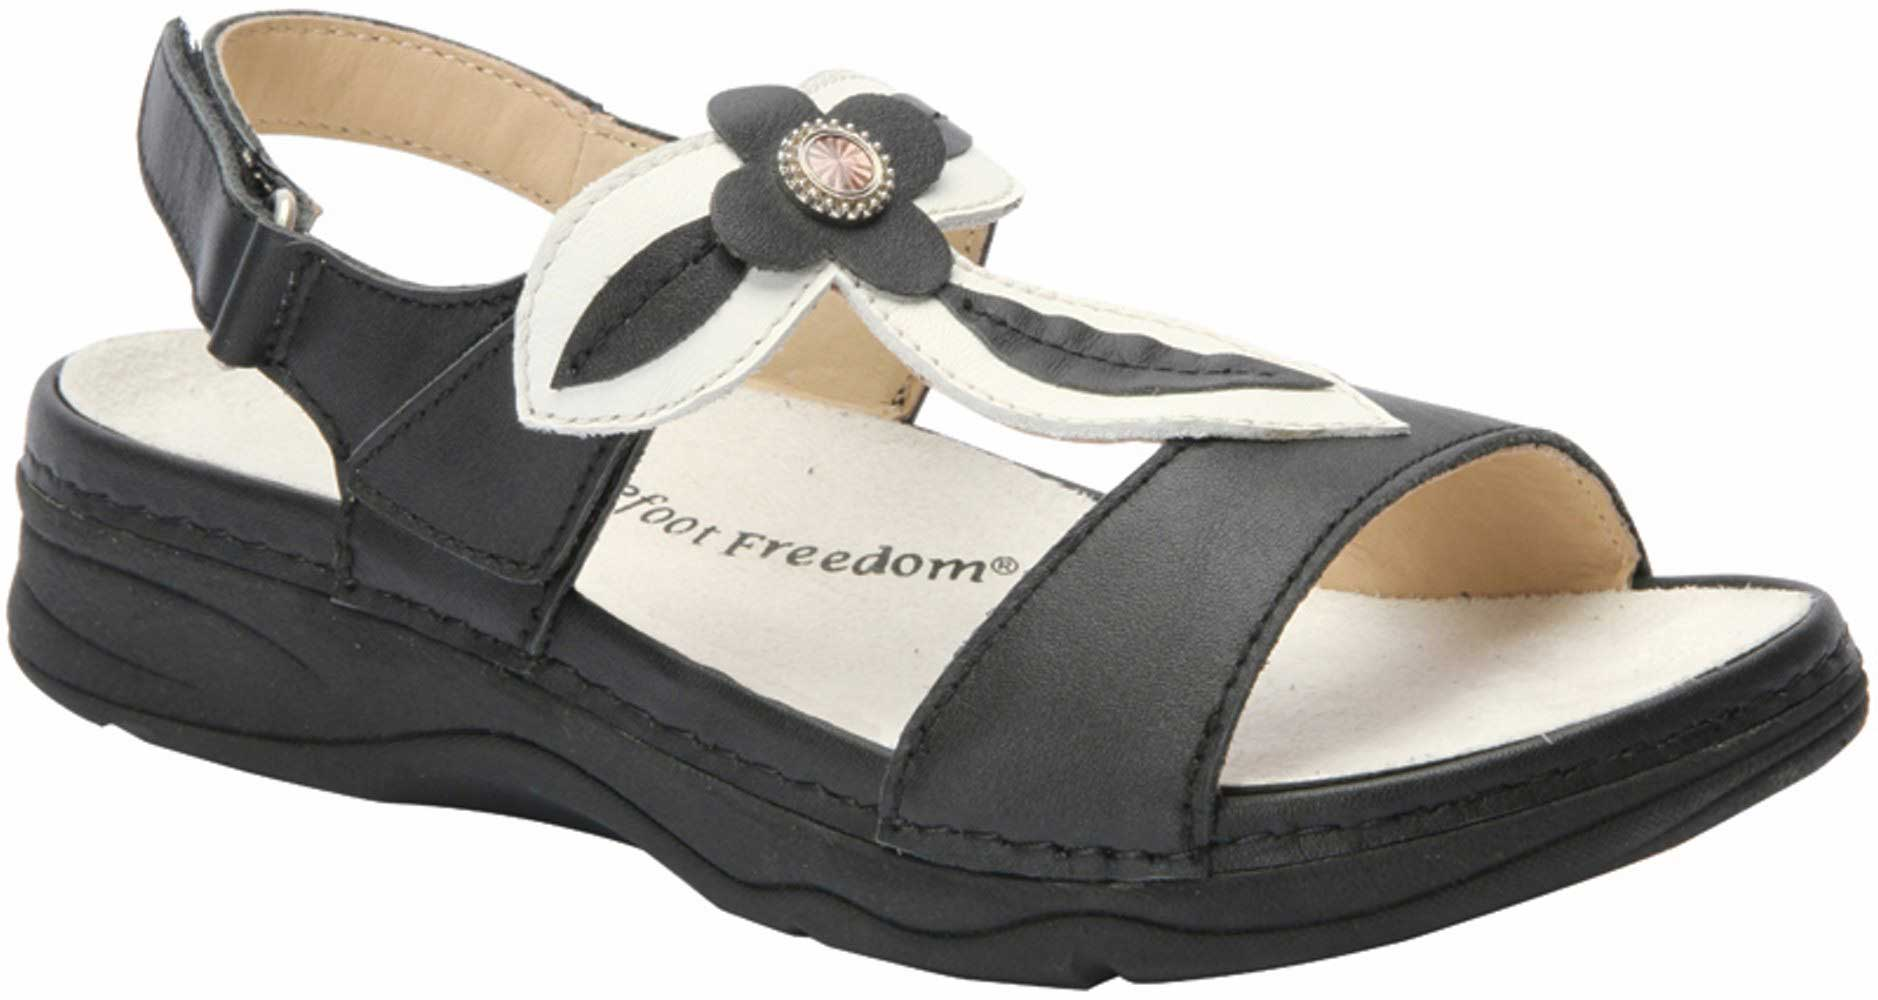 Drew Shoes Alana Sandal Diabetic Therapeutic And